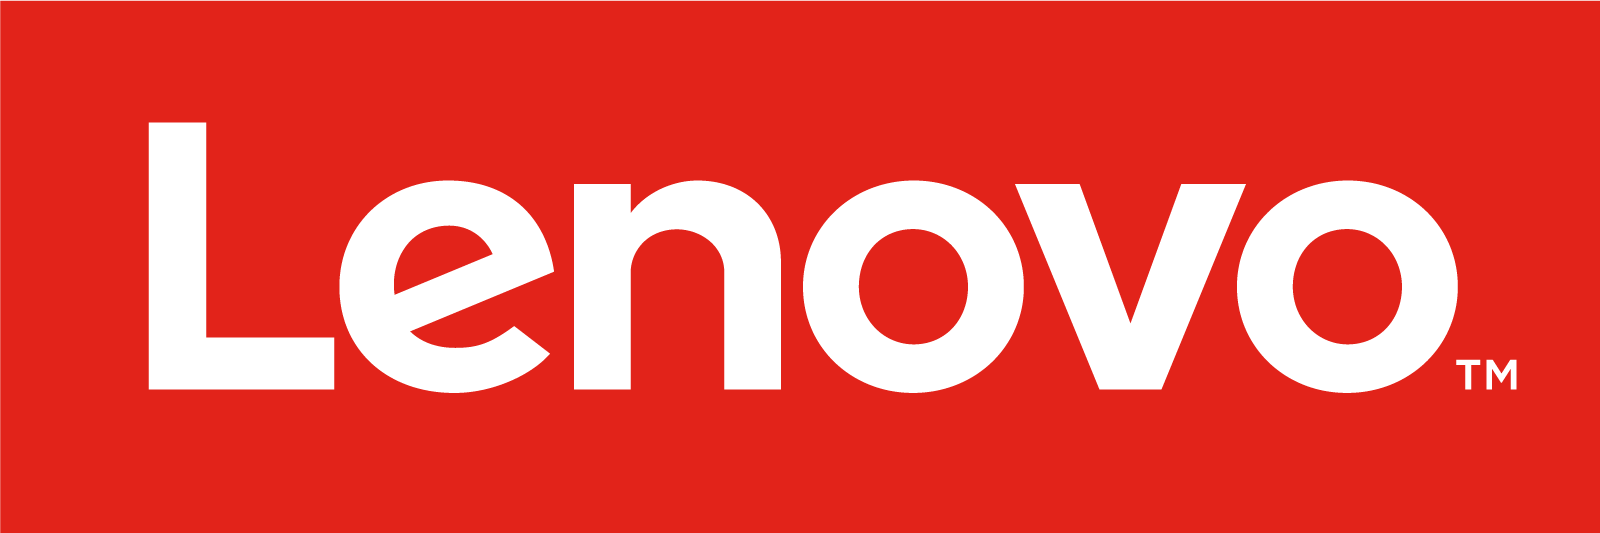 http://pcmentes.hu/wp-content/uploads/2016/11/LenovoLogo-POS-Red-1600x533.png